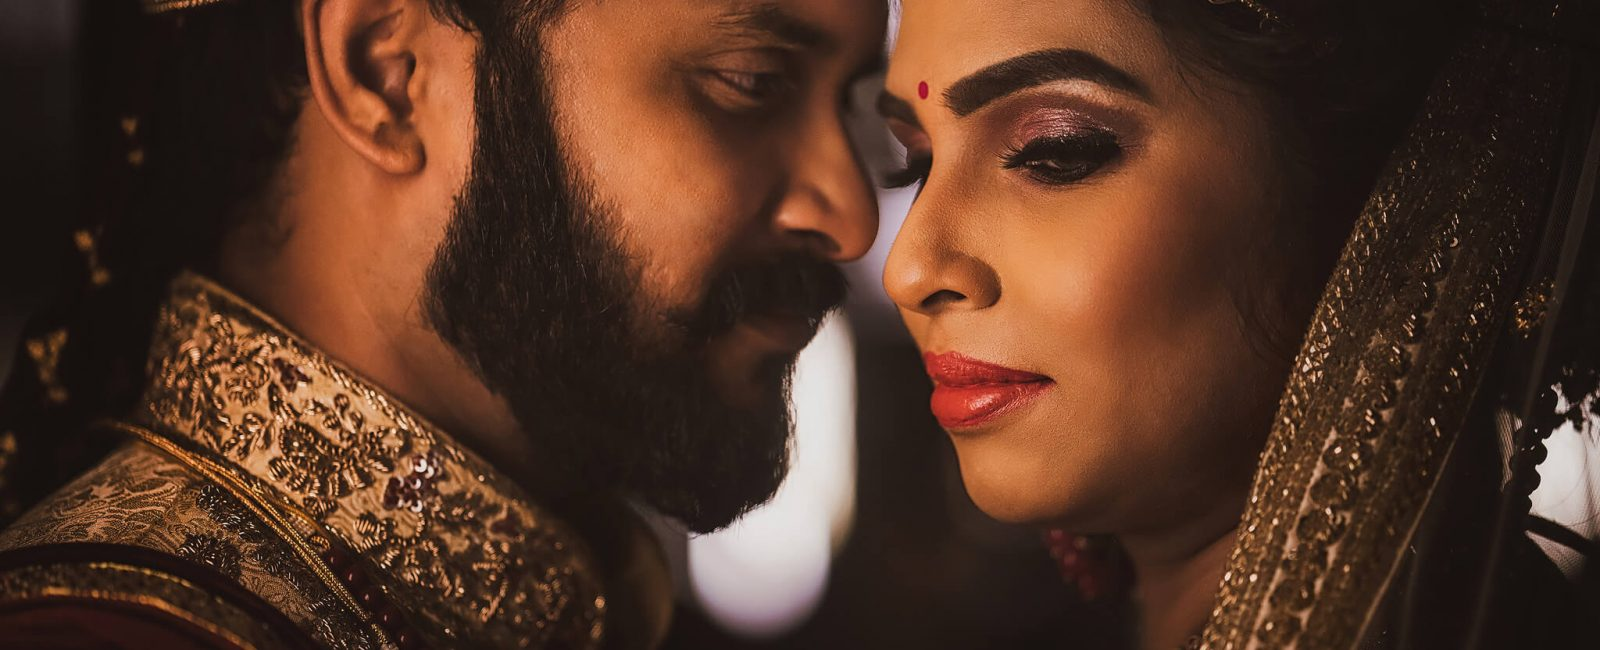 Quirky South Indian Wedding